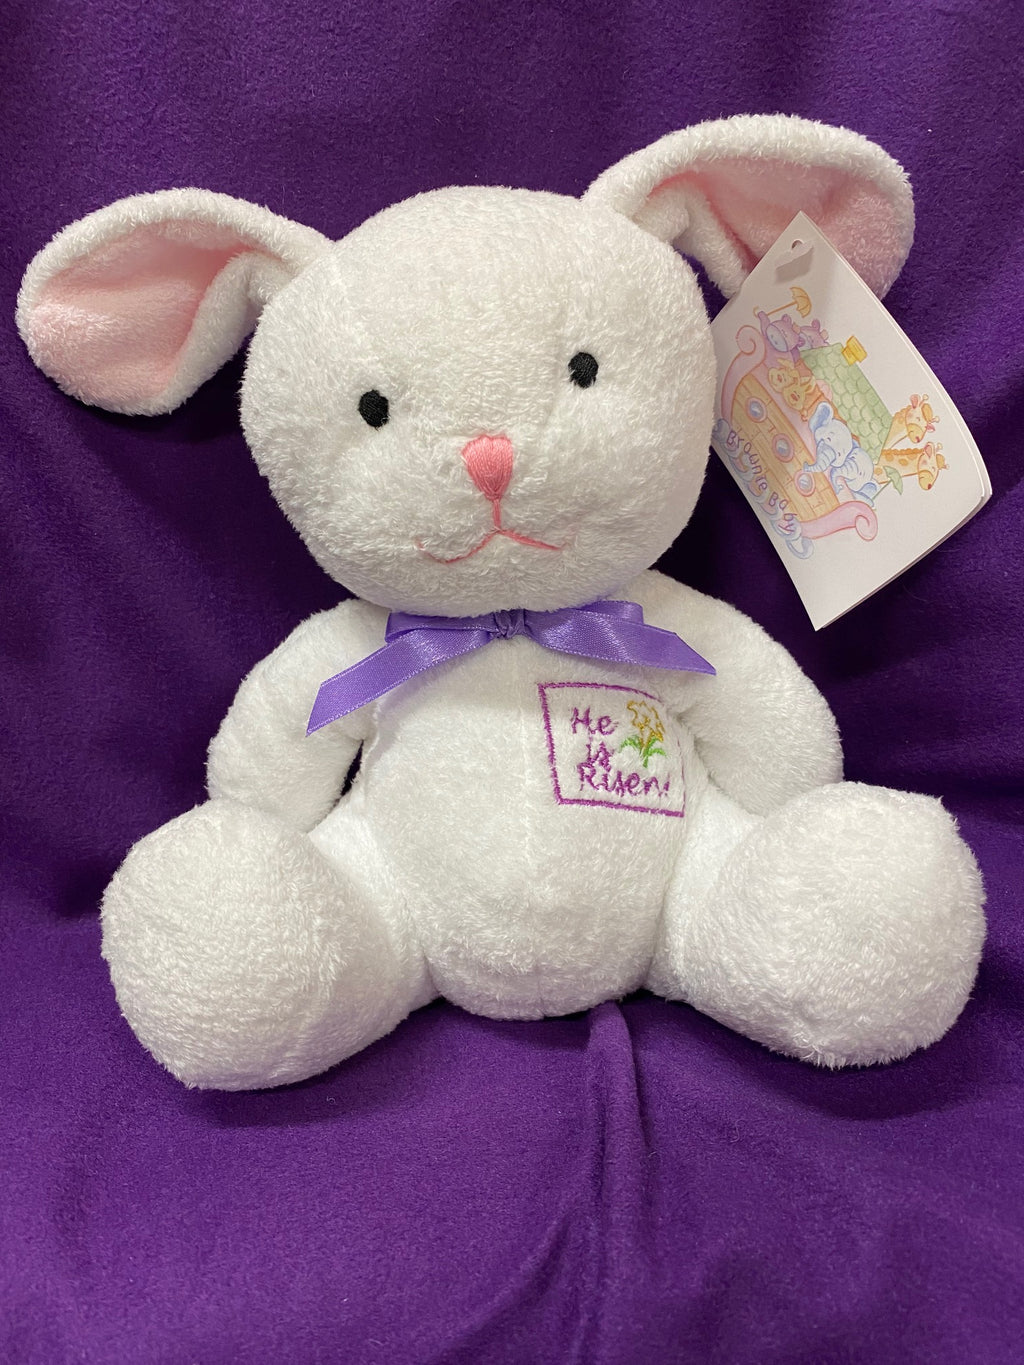 PLUSH HE IS RISEN BUNNY RABBIT